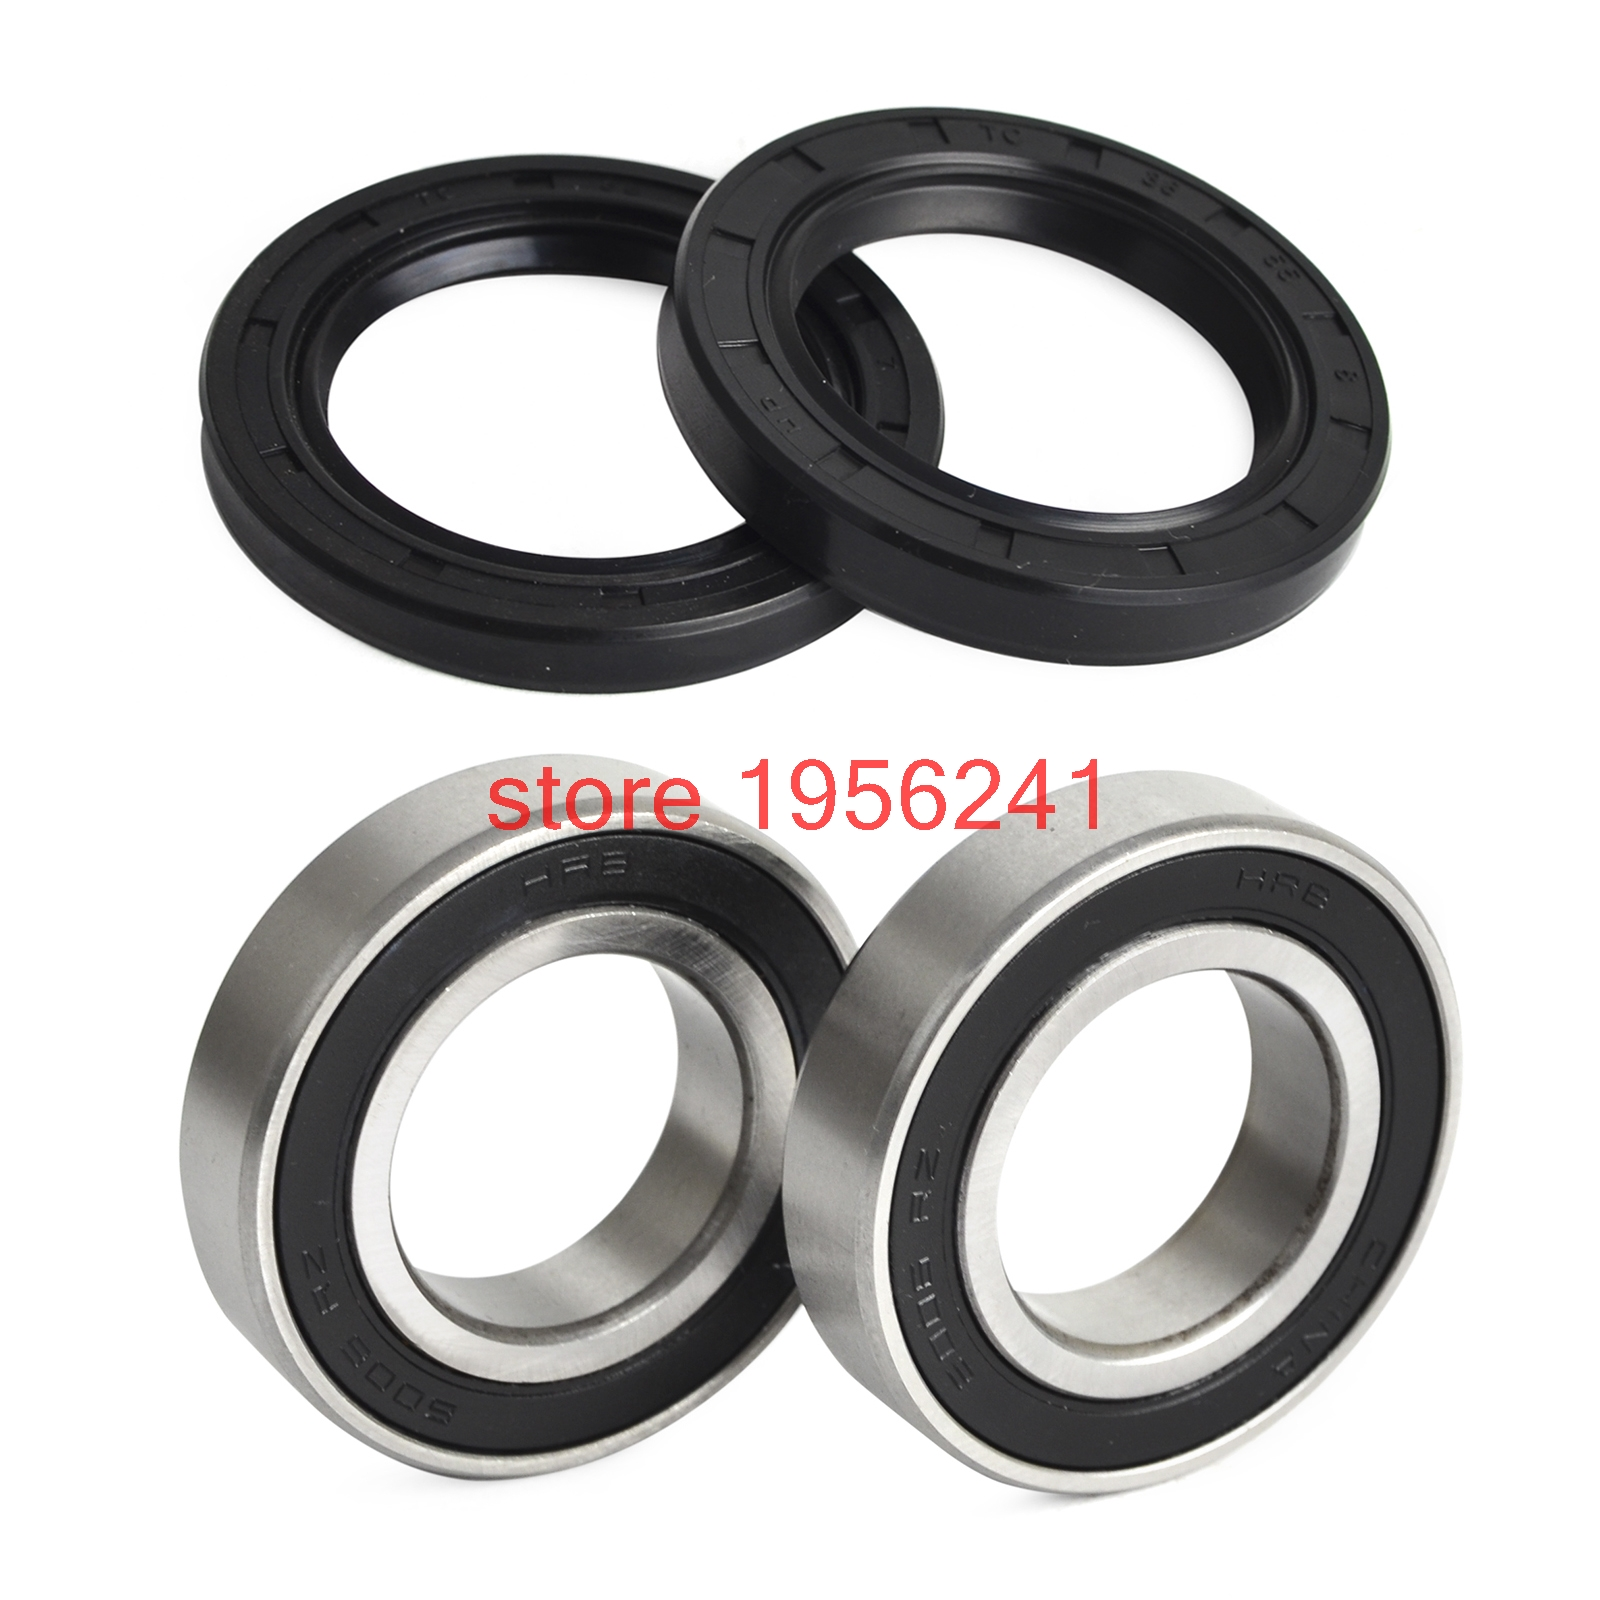 NICECNC Front Wheel Bearing Seats & Oil Seal Kit For <font><b>UTV</b></font> 800 700 <font><b>500</b></font> 400 <font><b>Hisun</b></font> Massimo Supermach Bennche image